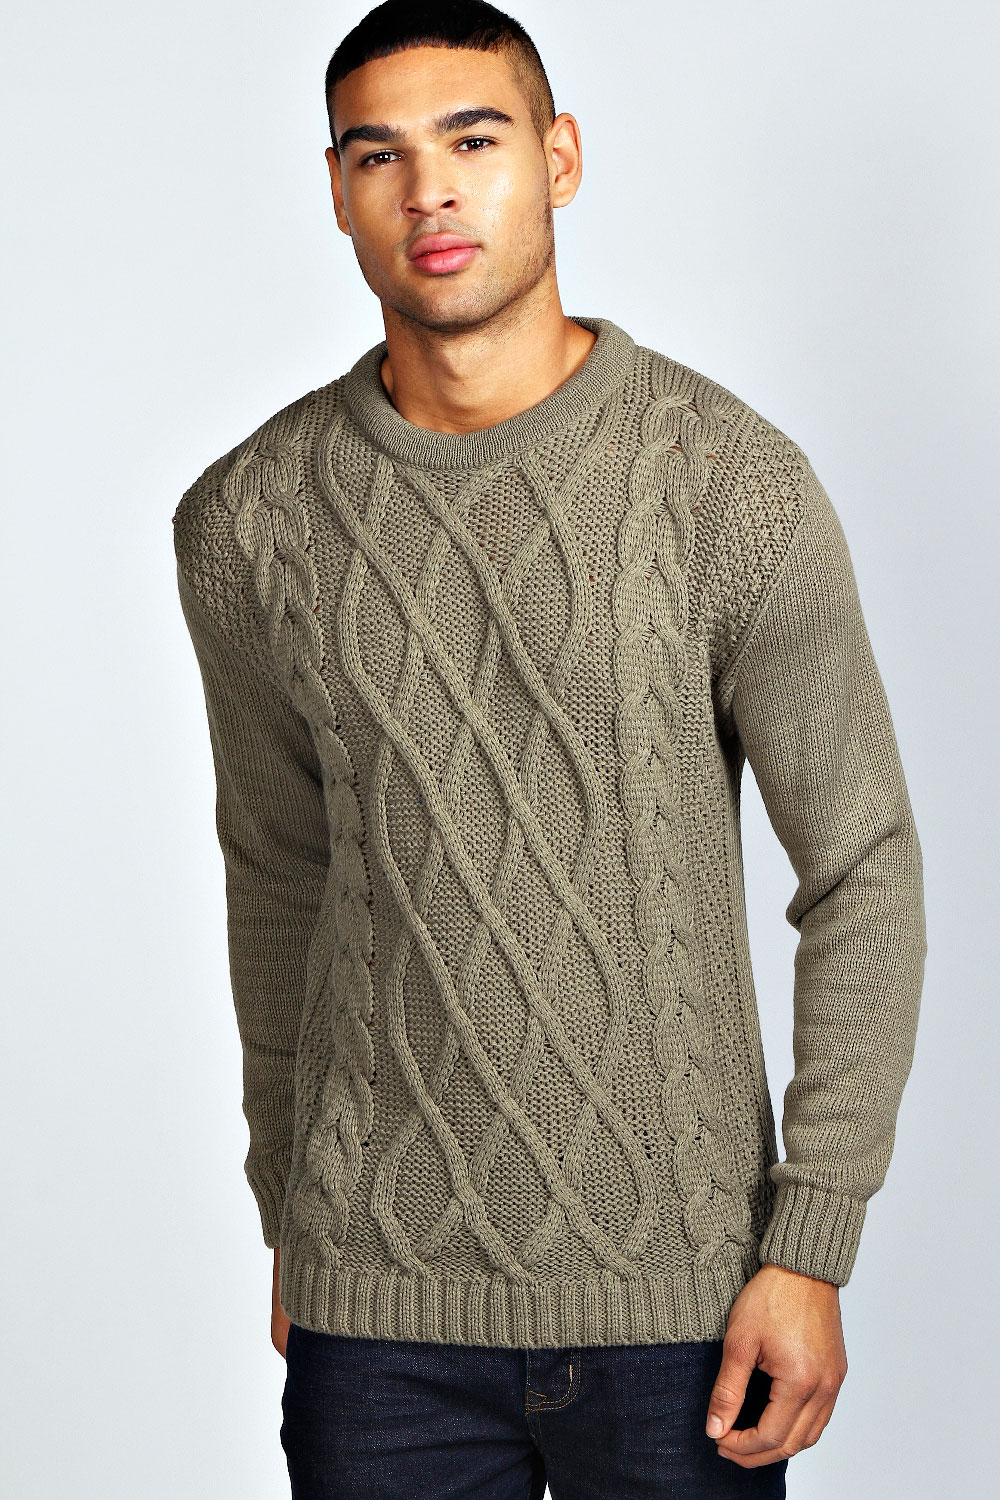 Men's Knitwear All of our traditional men's garments are made in Ireland and numerous of them are Hand Knit by world class Irish knitters. We specialize in bringing our customers beautiful traditional pieces as well as pieces with an elegant modern twist.